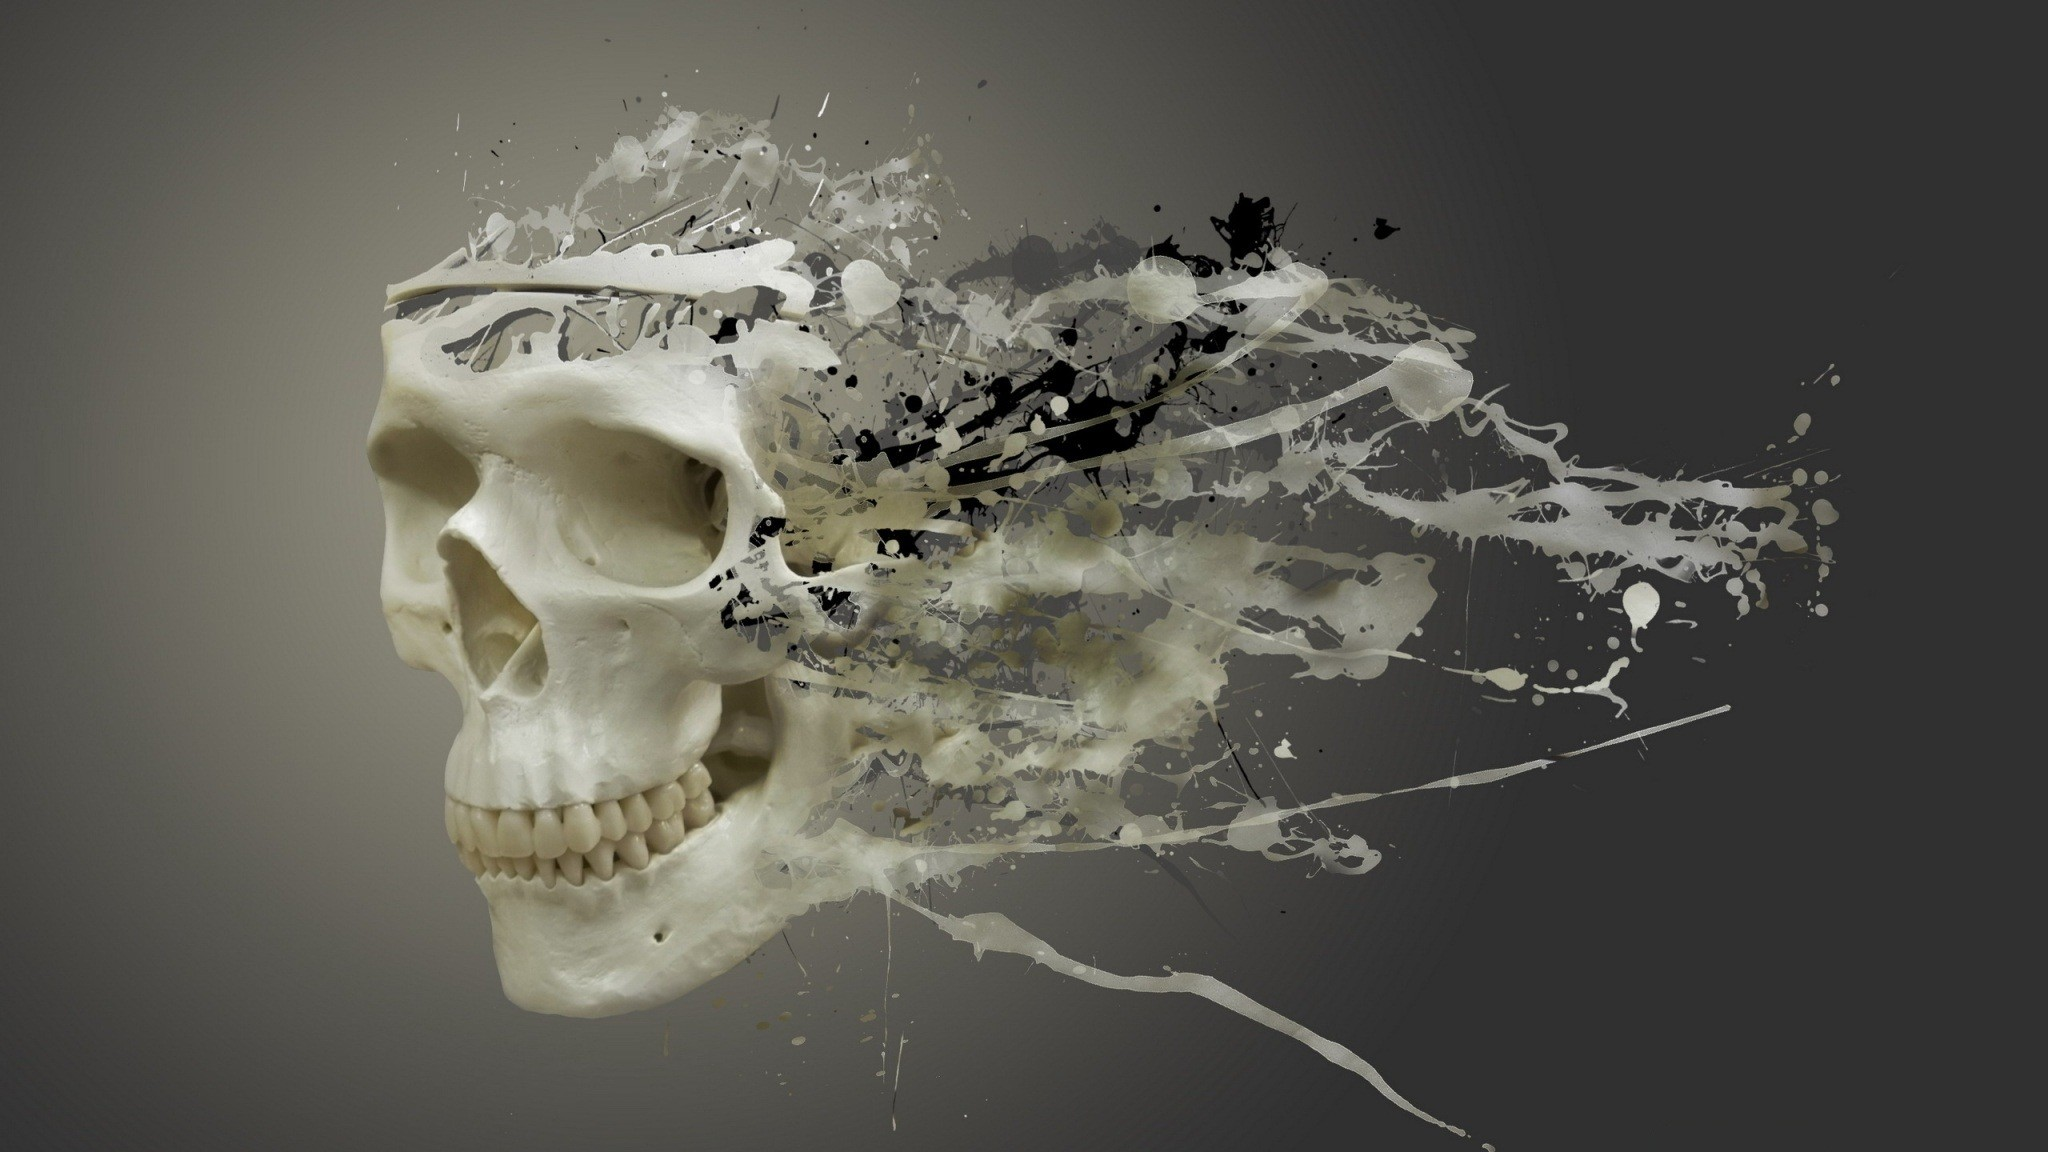 Disintegrating Skull by hridoy74. This would make an amazing tattoo.